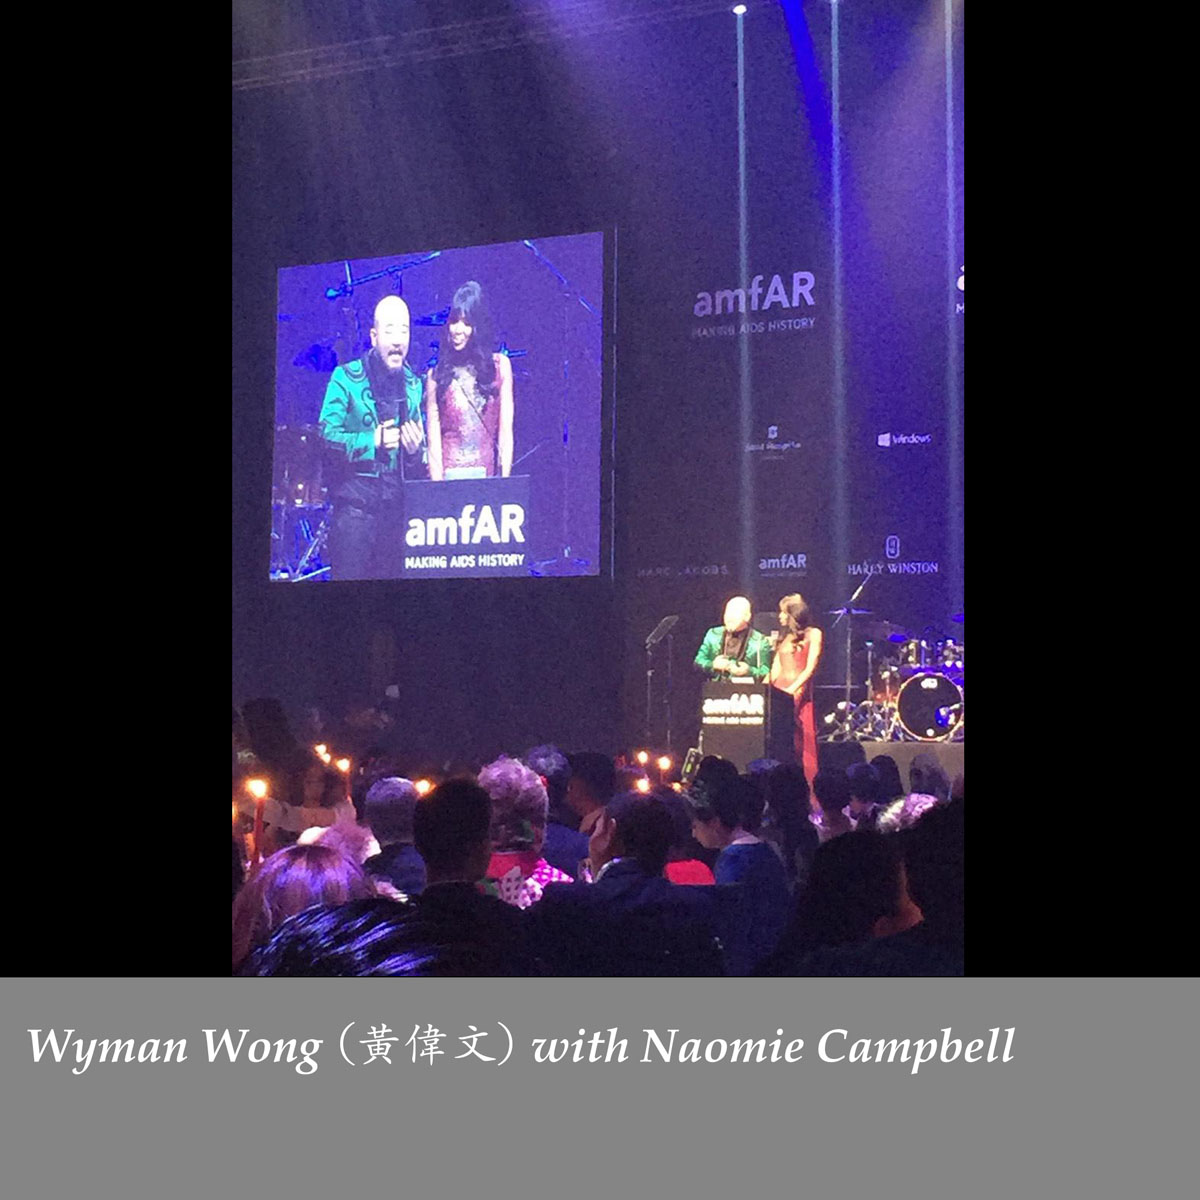 Wyman-Wong-with-Naomie-Campbell